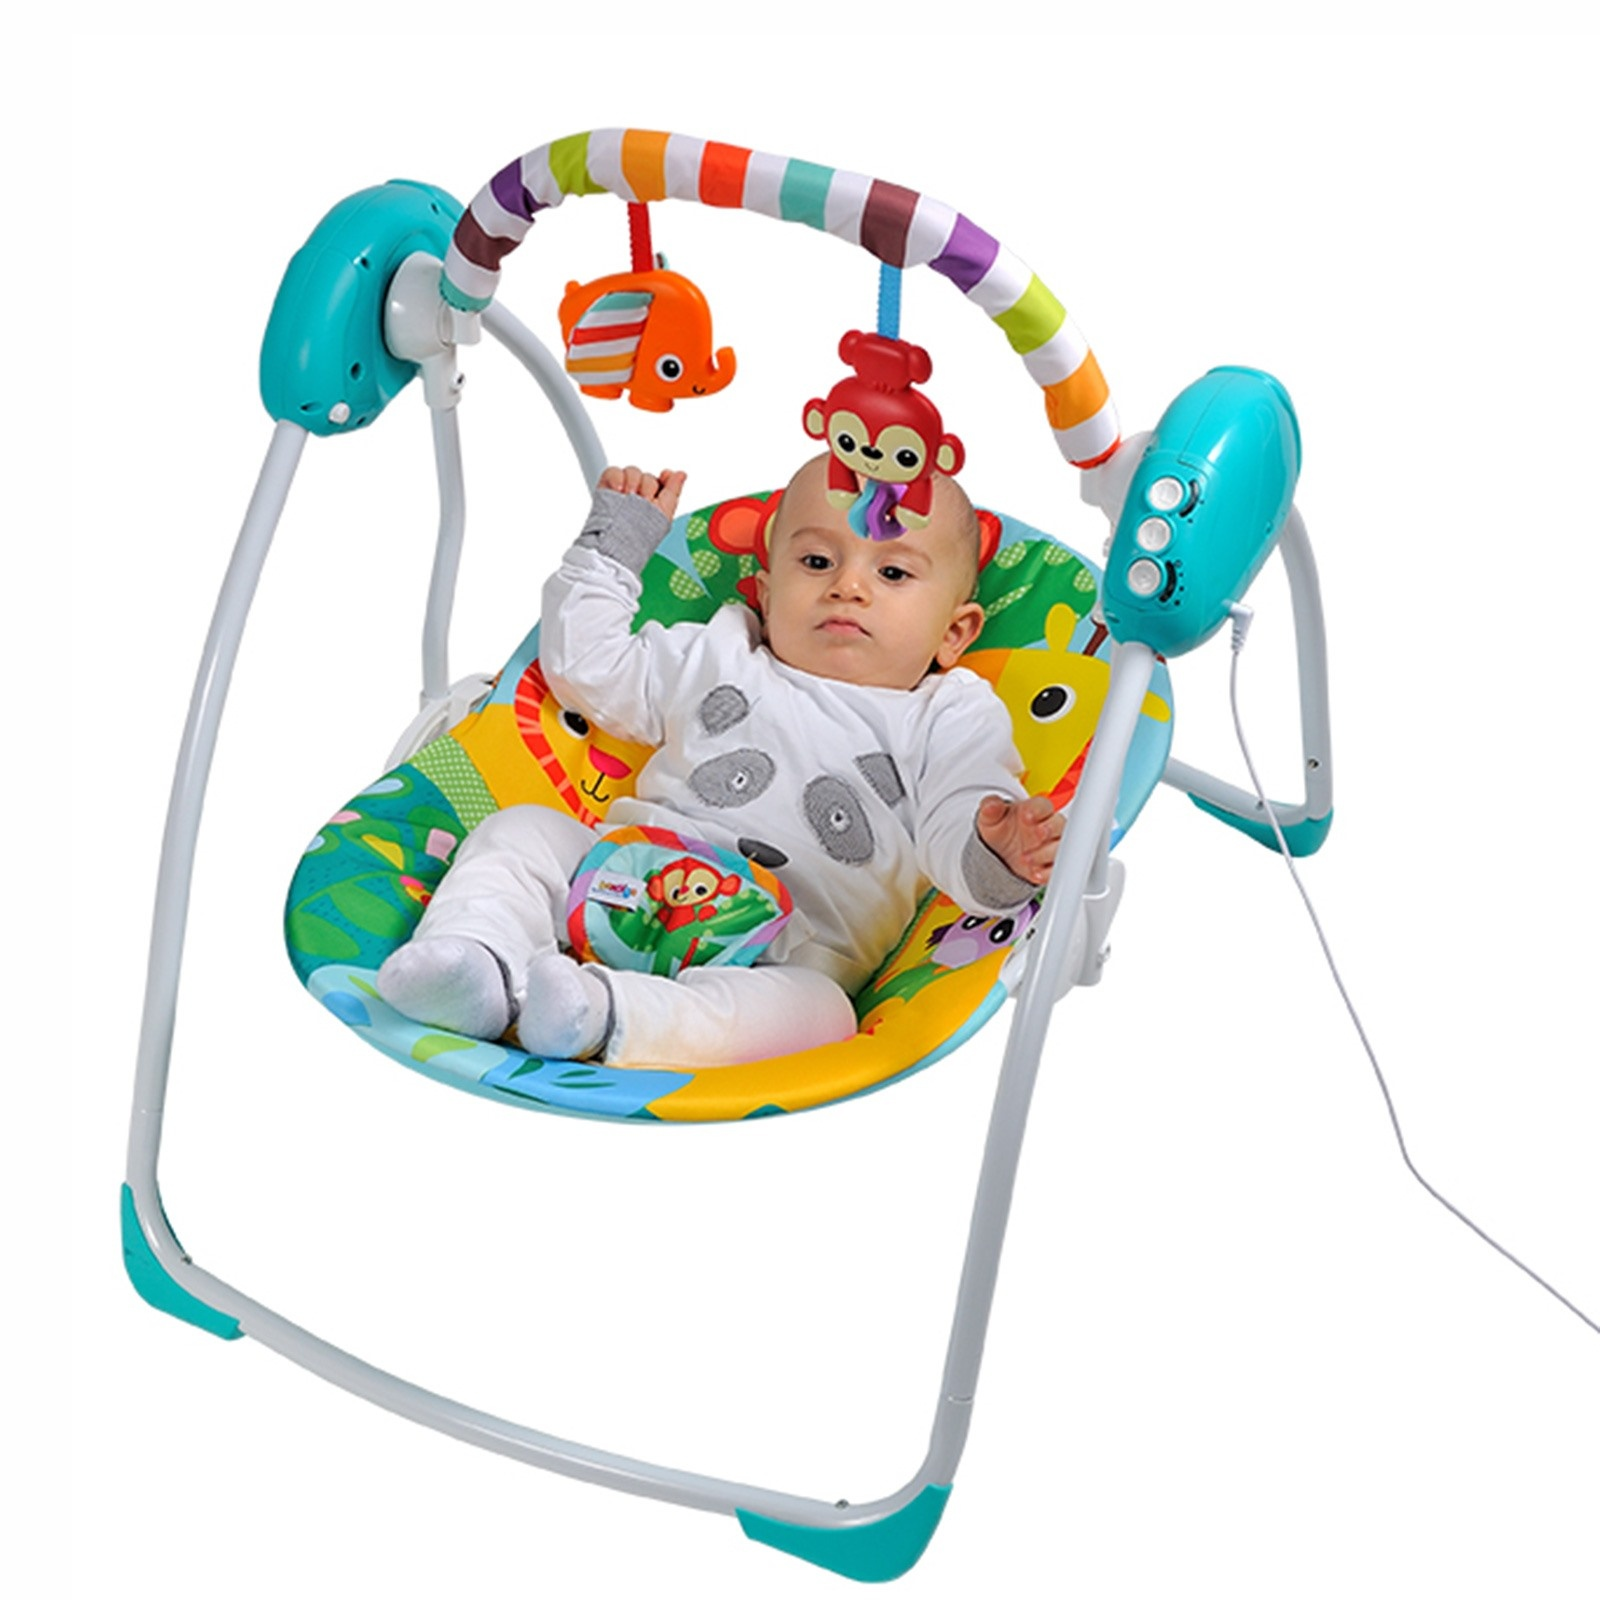 Ebebek Bondigo BL7120 Swing-Fun Friends